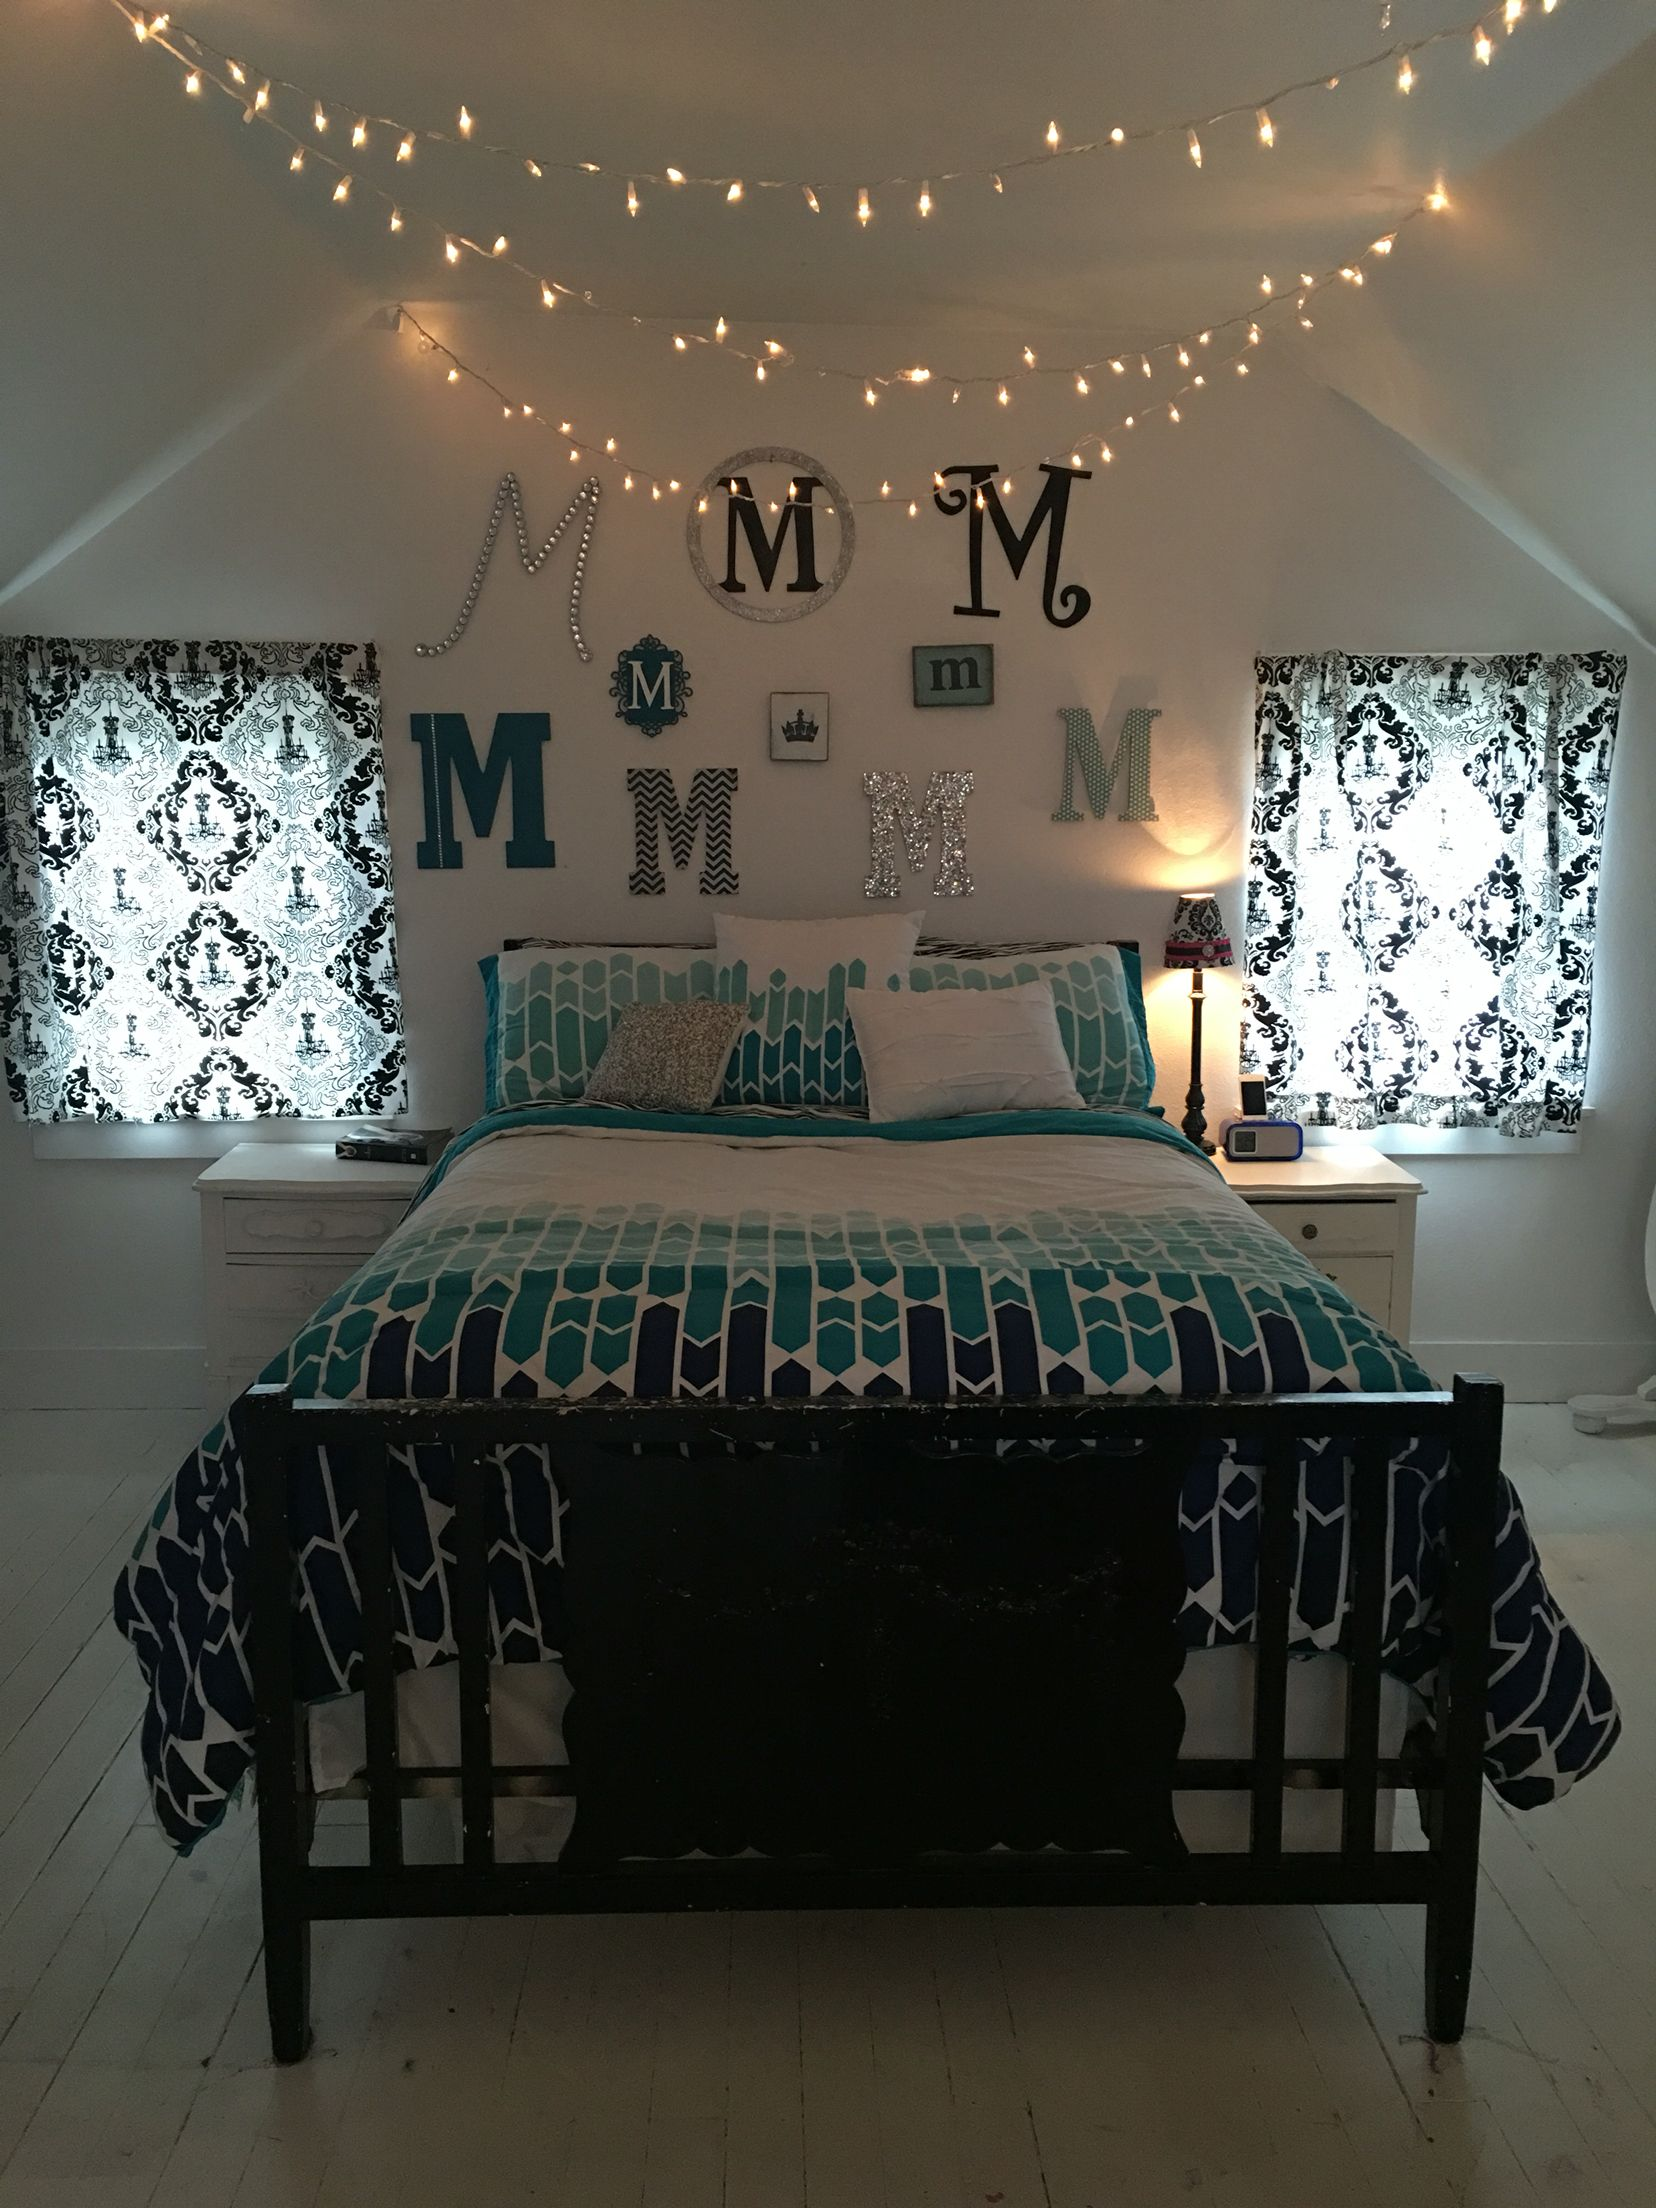 Silver And Black Bedroom Teenage Girls Bedroom Twinkle Lights Christmas Lights Teal